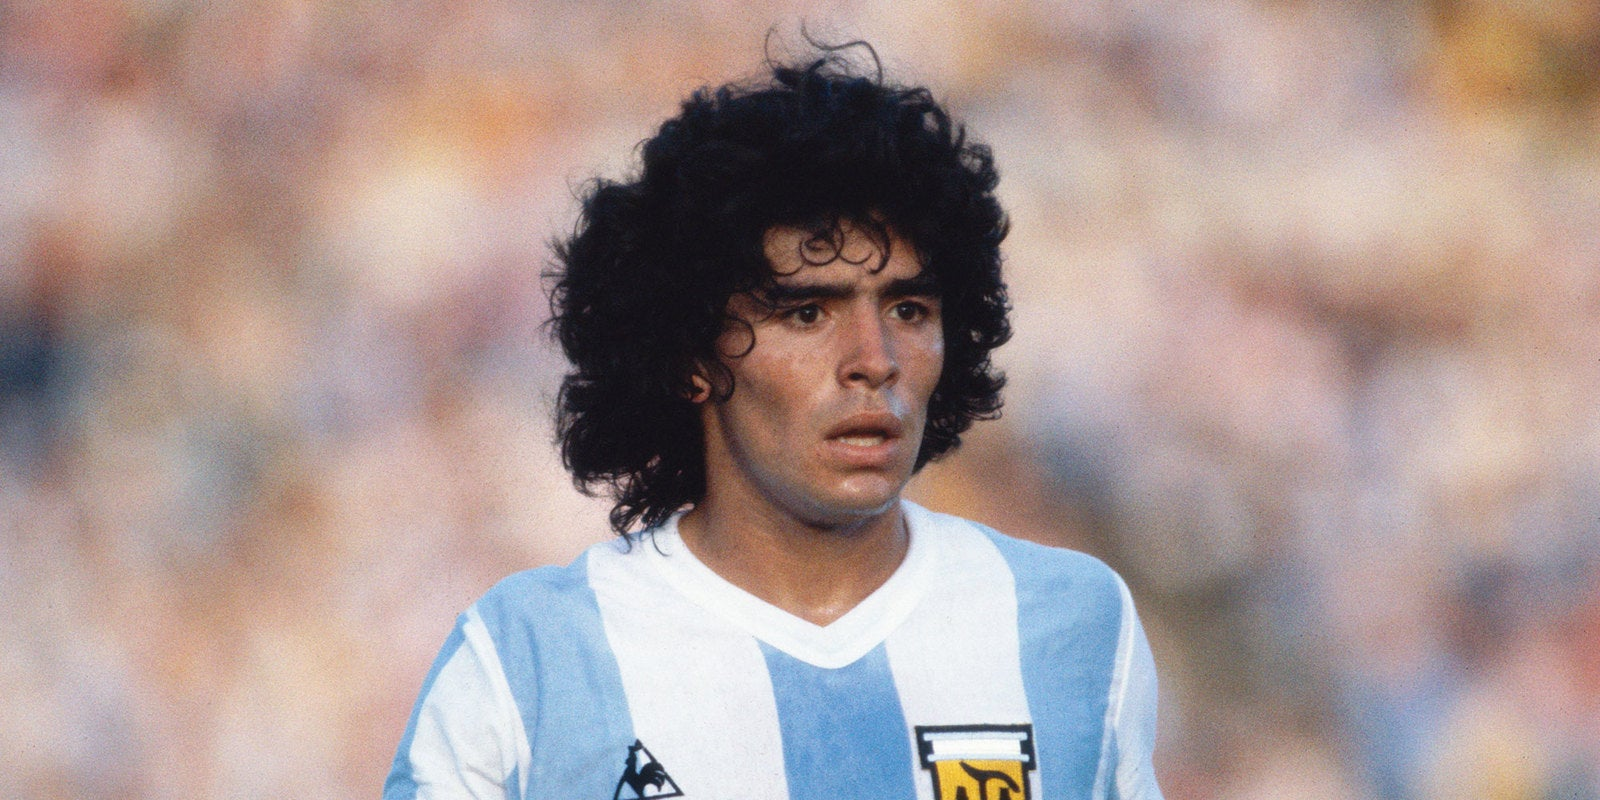 Diego Maradona alleges Konami put him in PES 2017 without permission